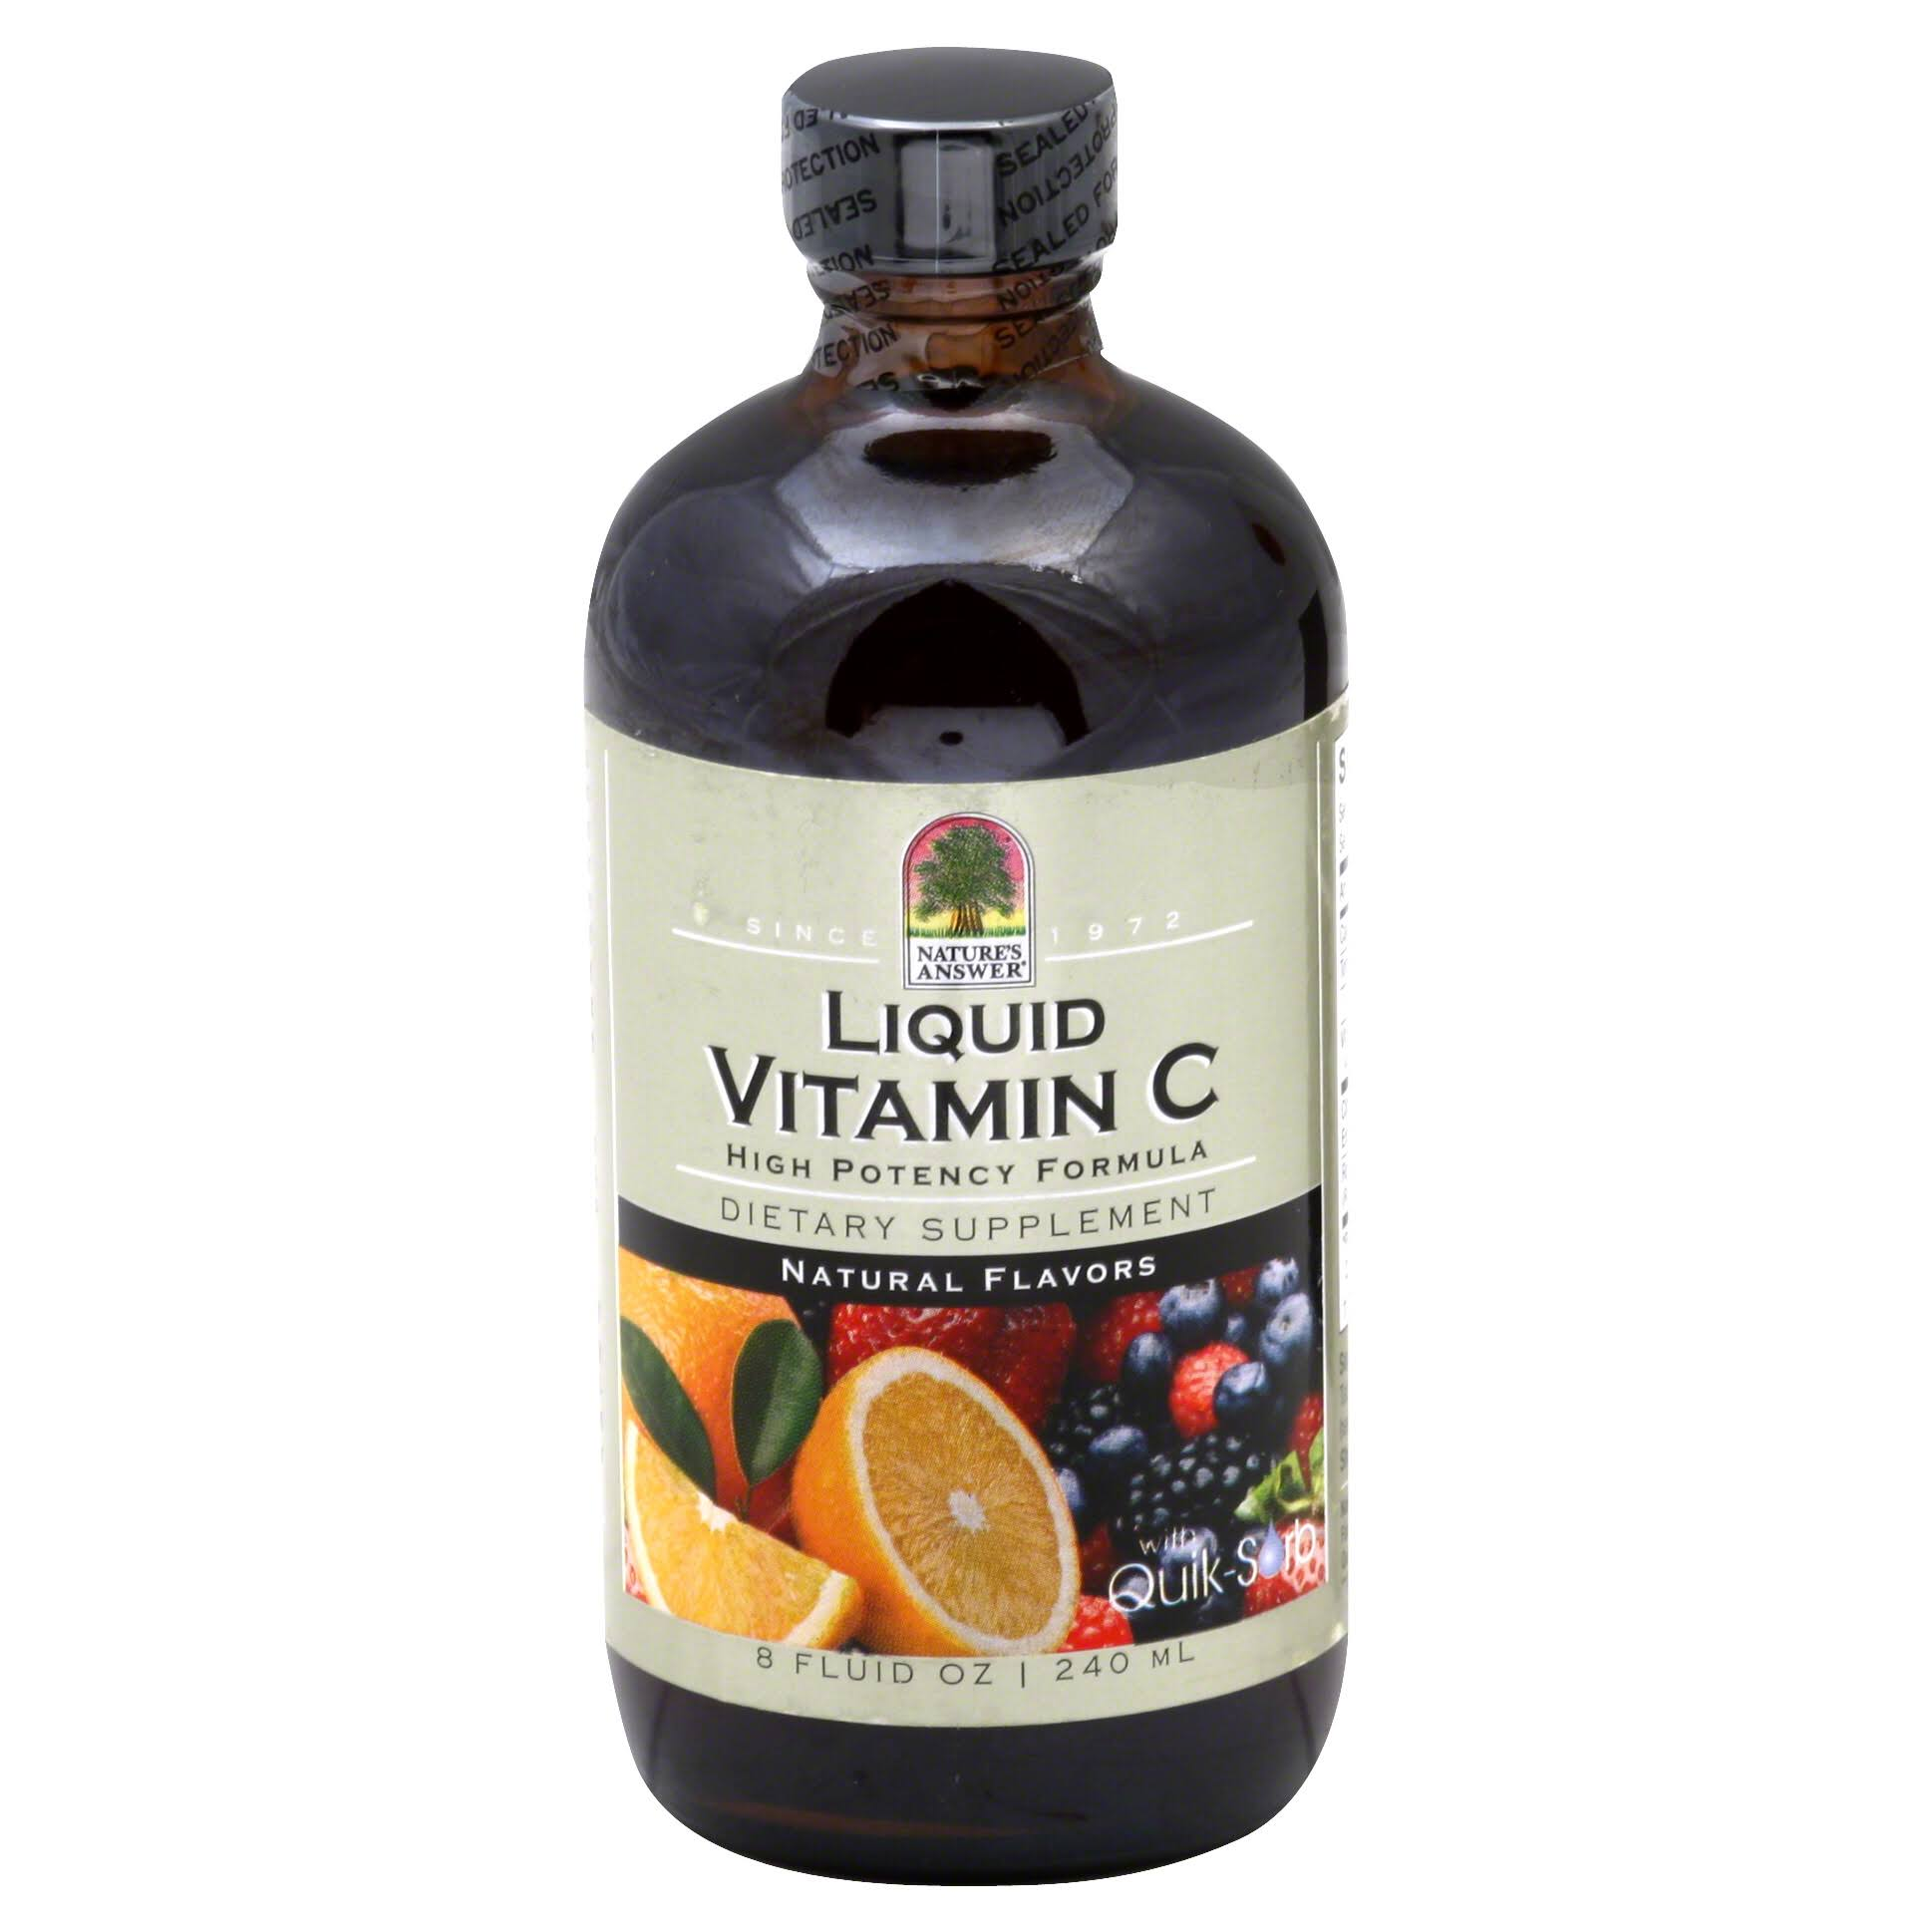 Nature's Answer Liquid Vitamin C Supplement - 8oz